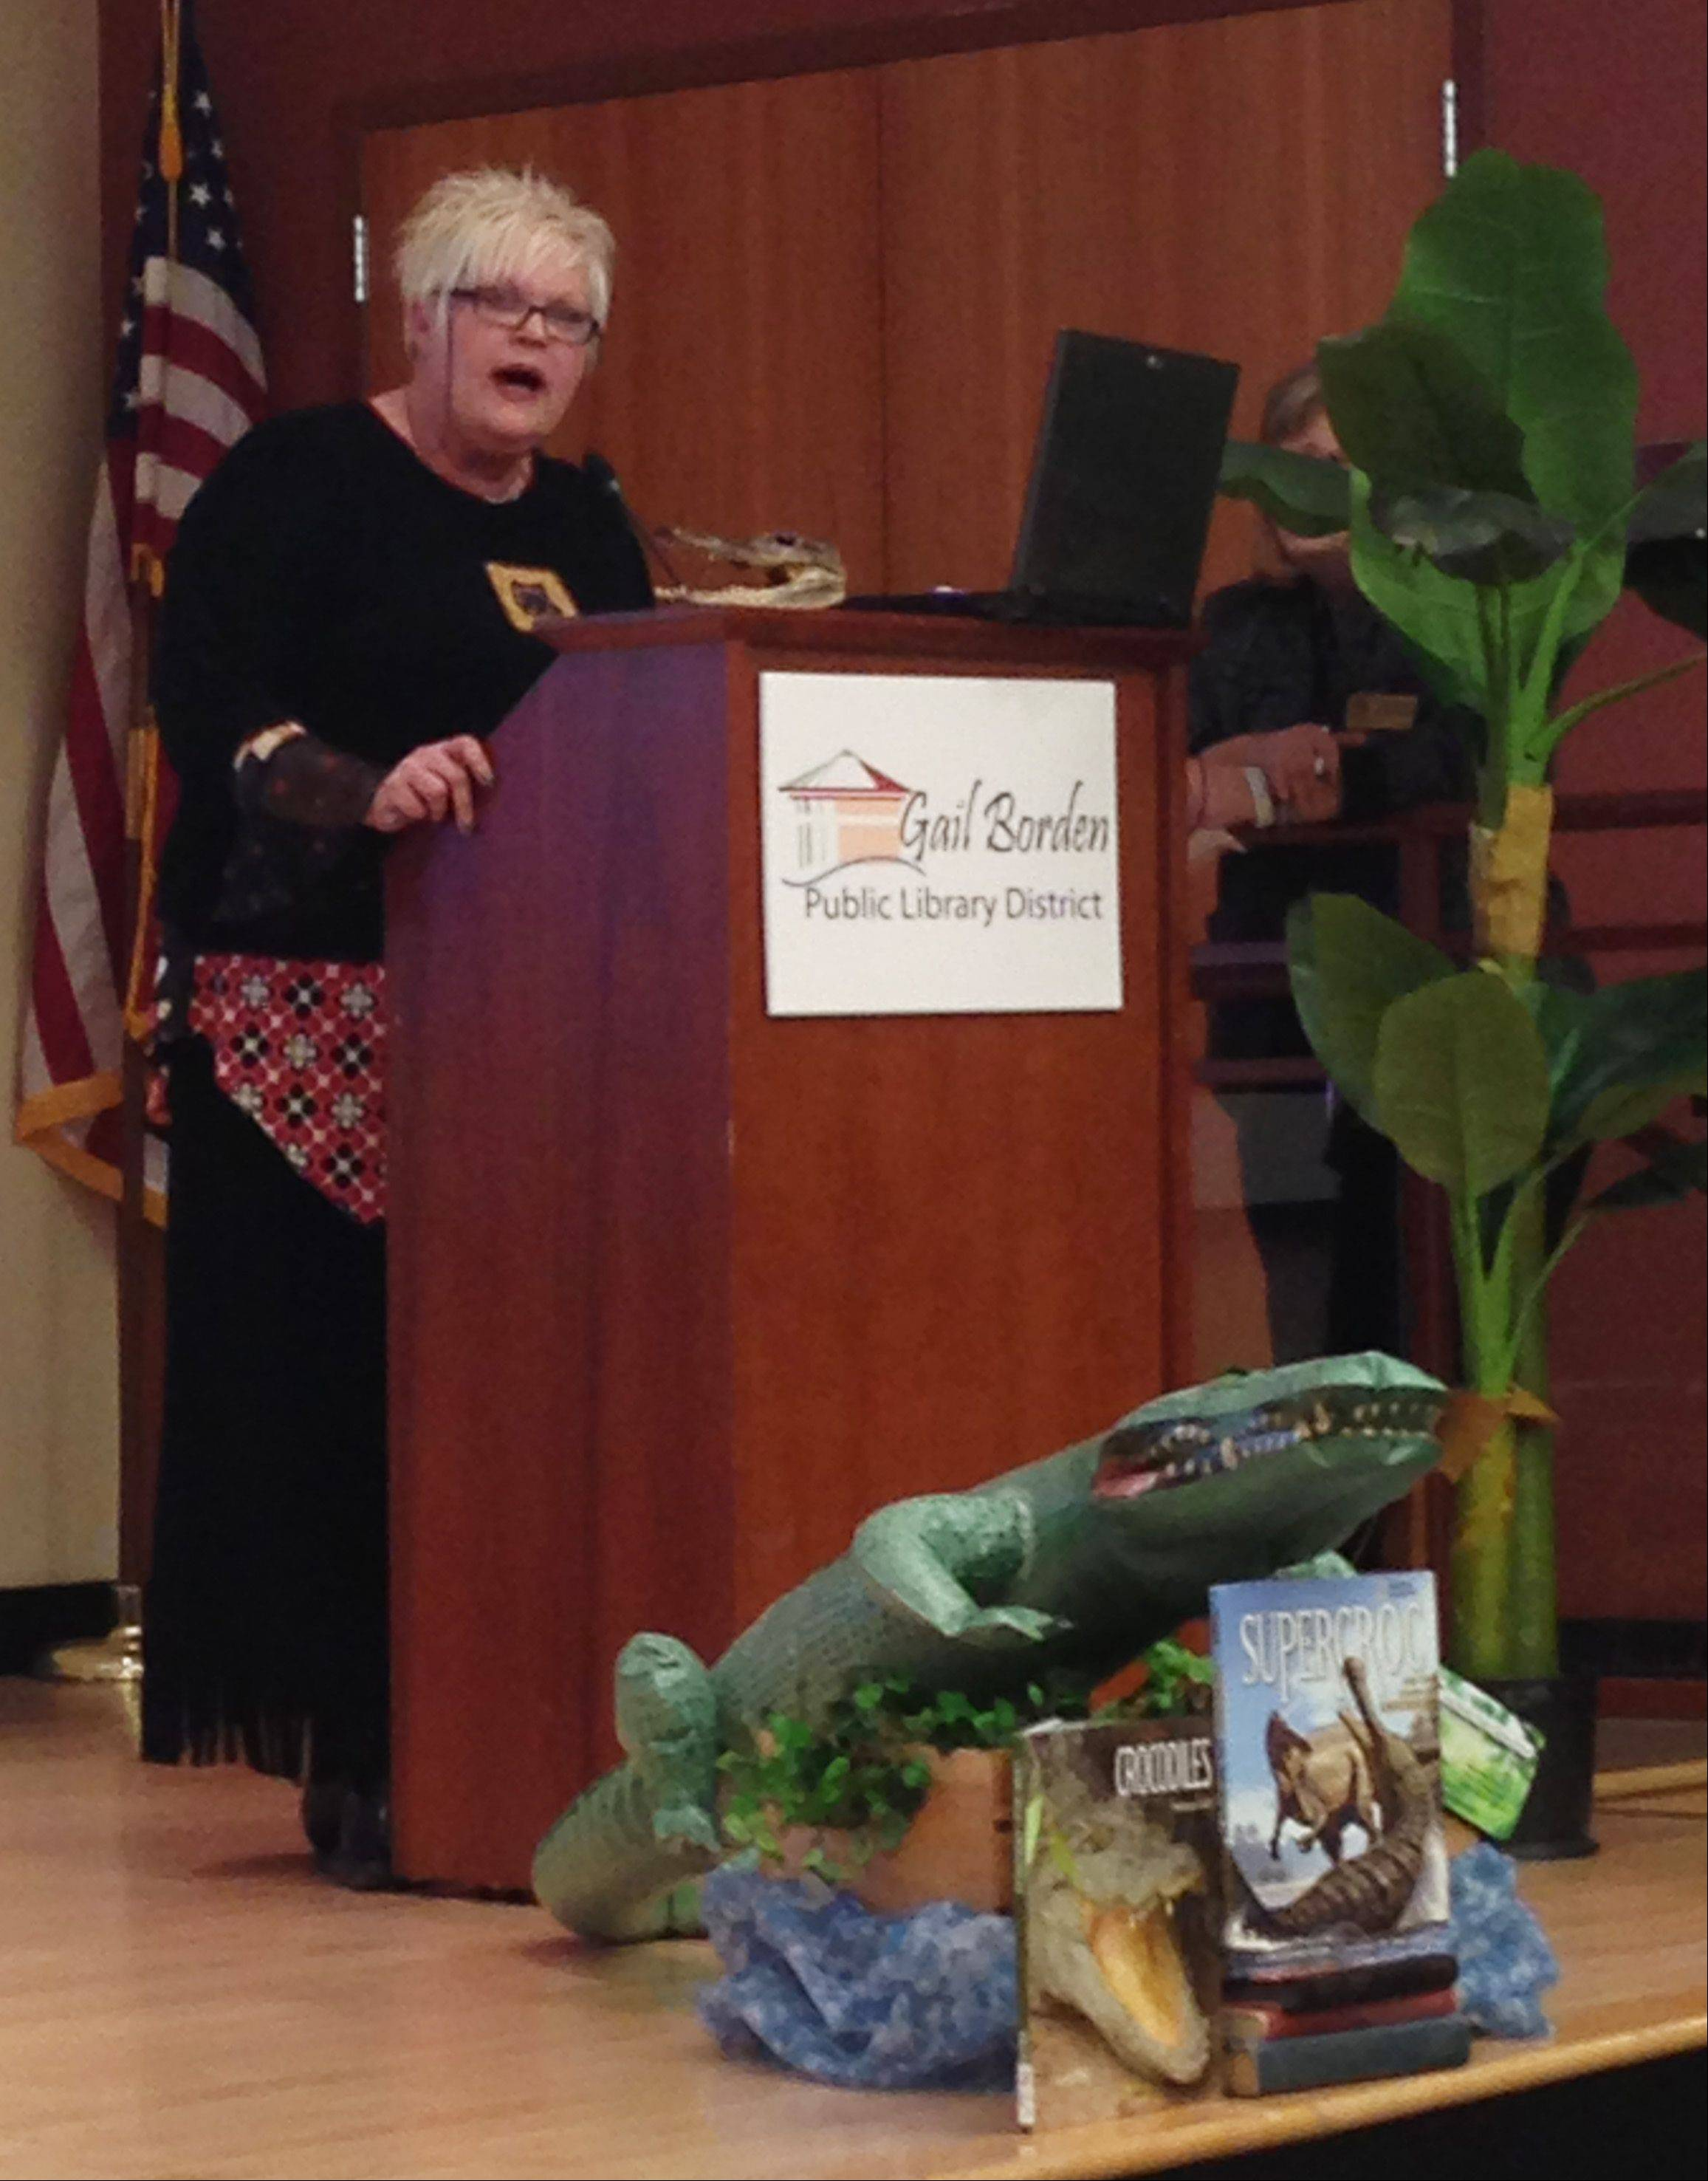 Sigi Psimenos, a board member for the Elgin Community Network, talks about the upcoming What the Croc public outdoor art exhibit and competition in Elgin.